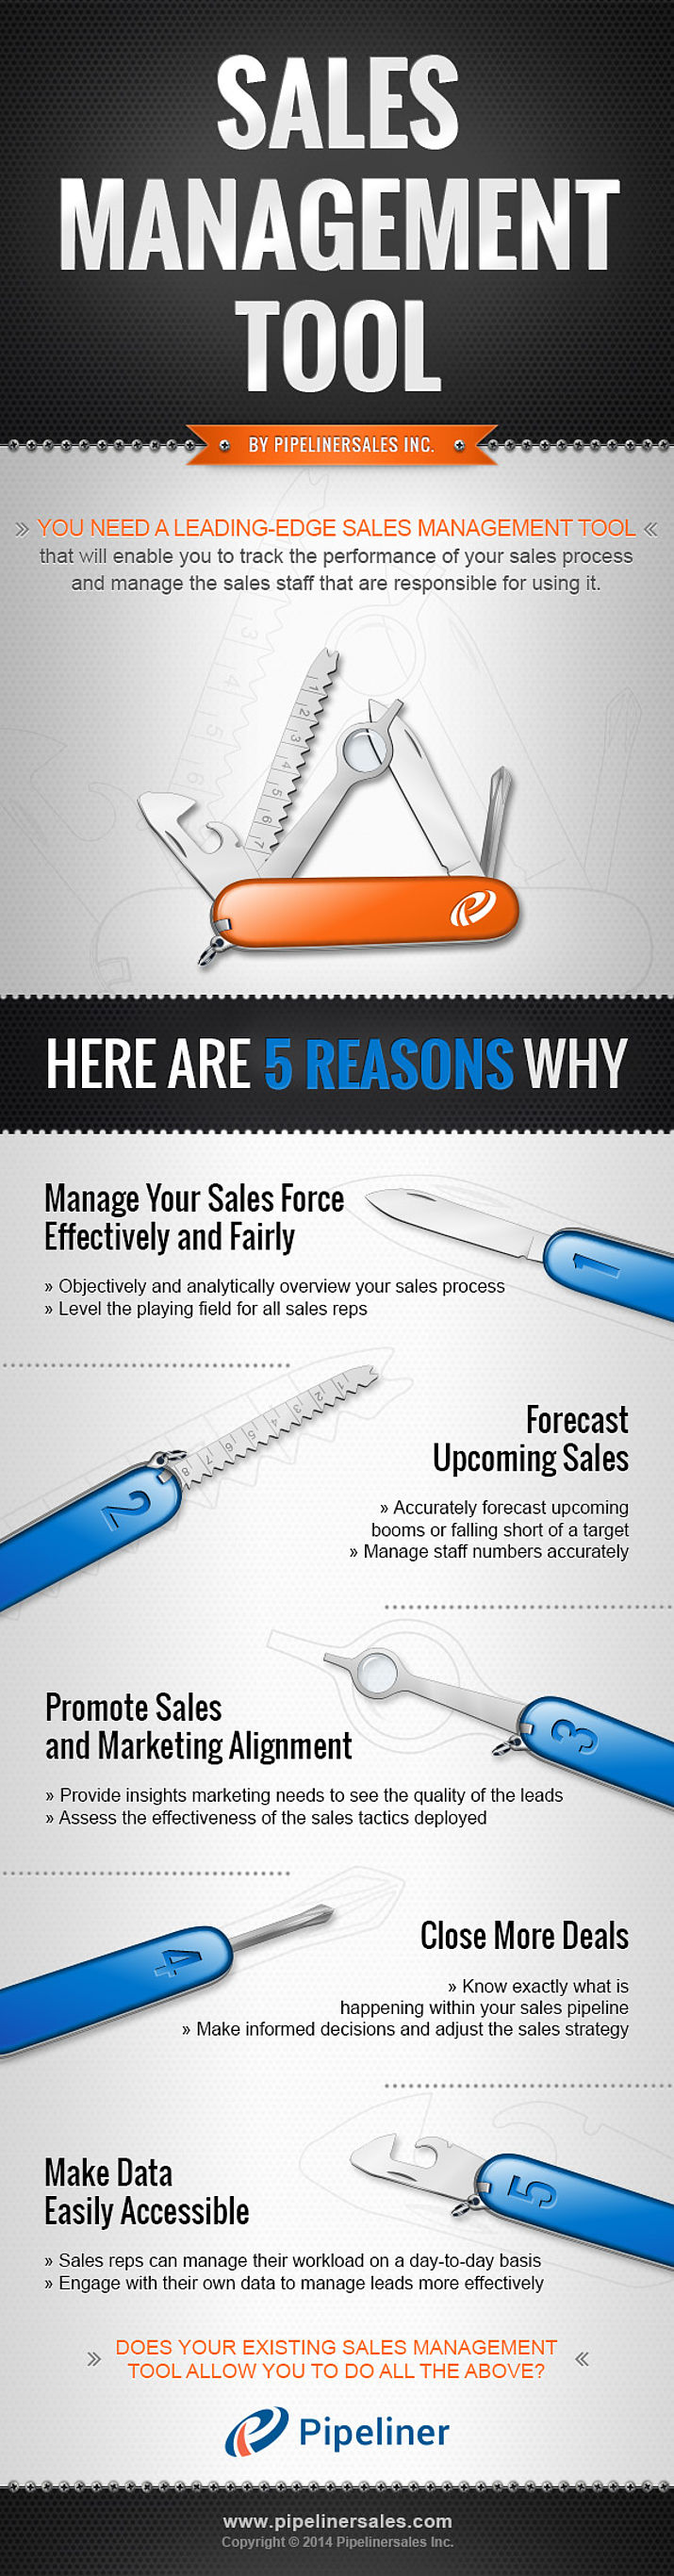 Sales Management Tool